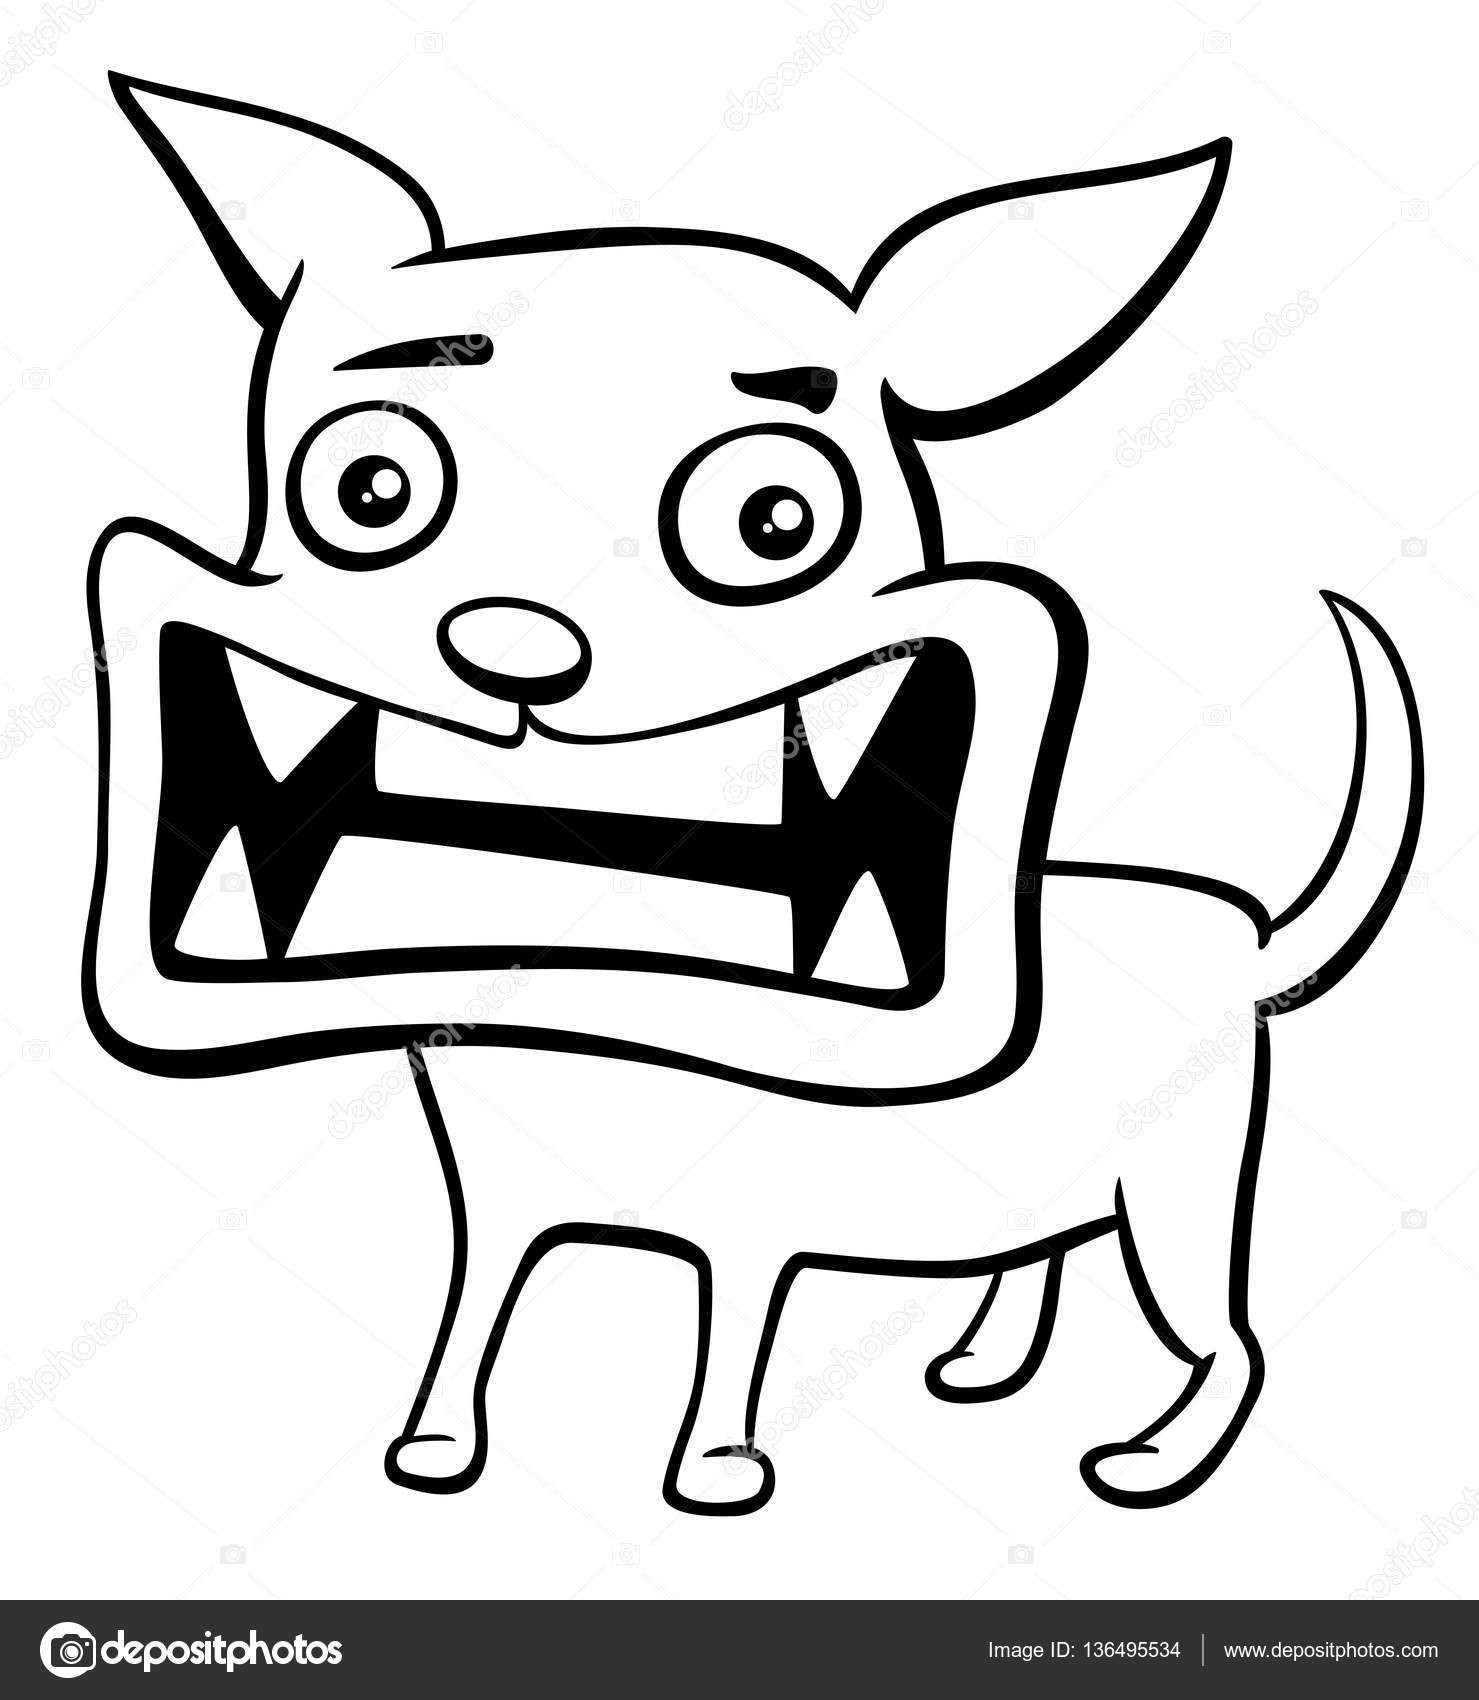 angry puppy coloring page — Stock Vector © izakowski #136495534